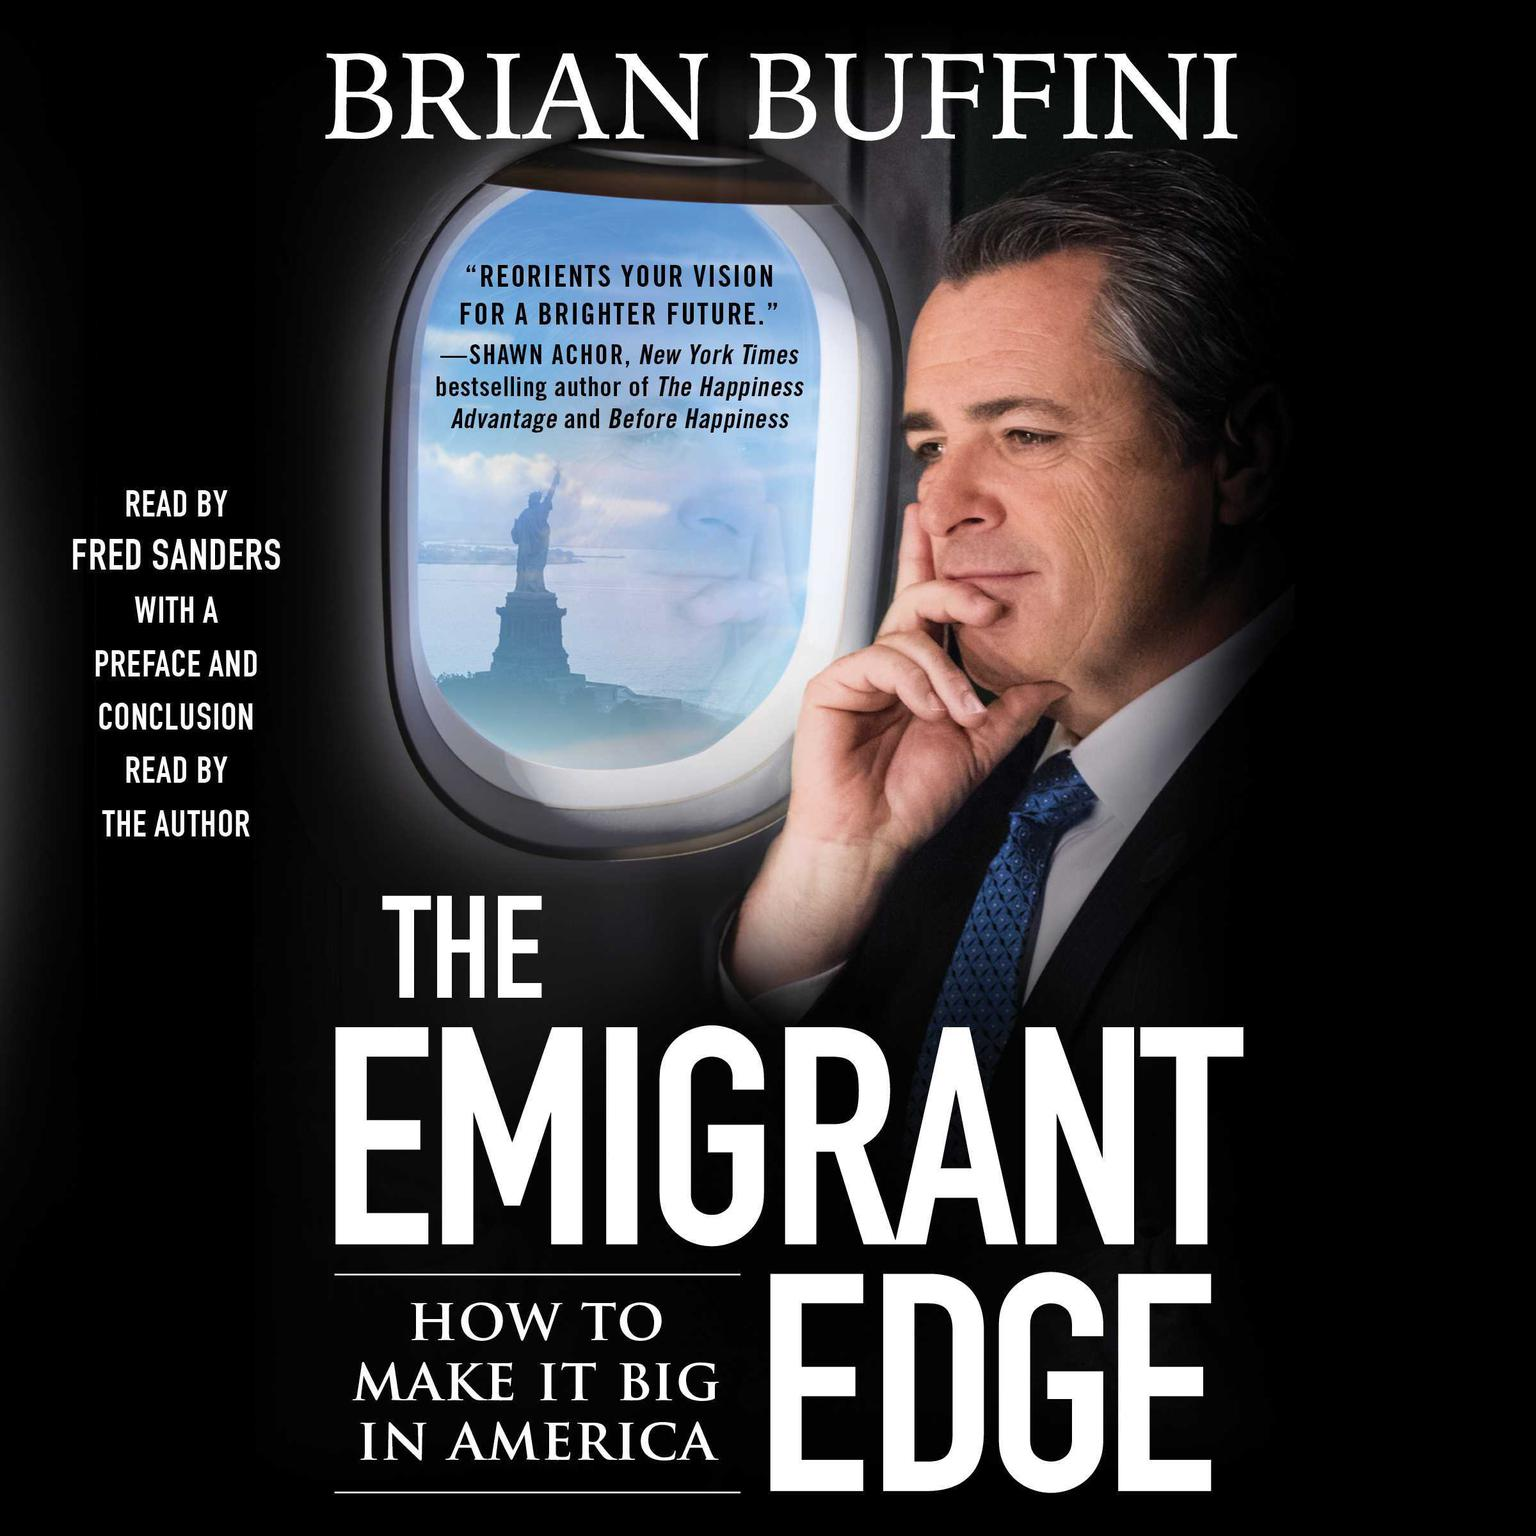 Printable The Emigrant Edge: How to Make It Big in America Audiobook Cover Art